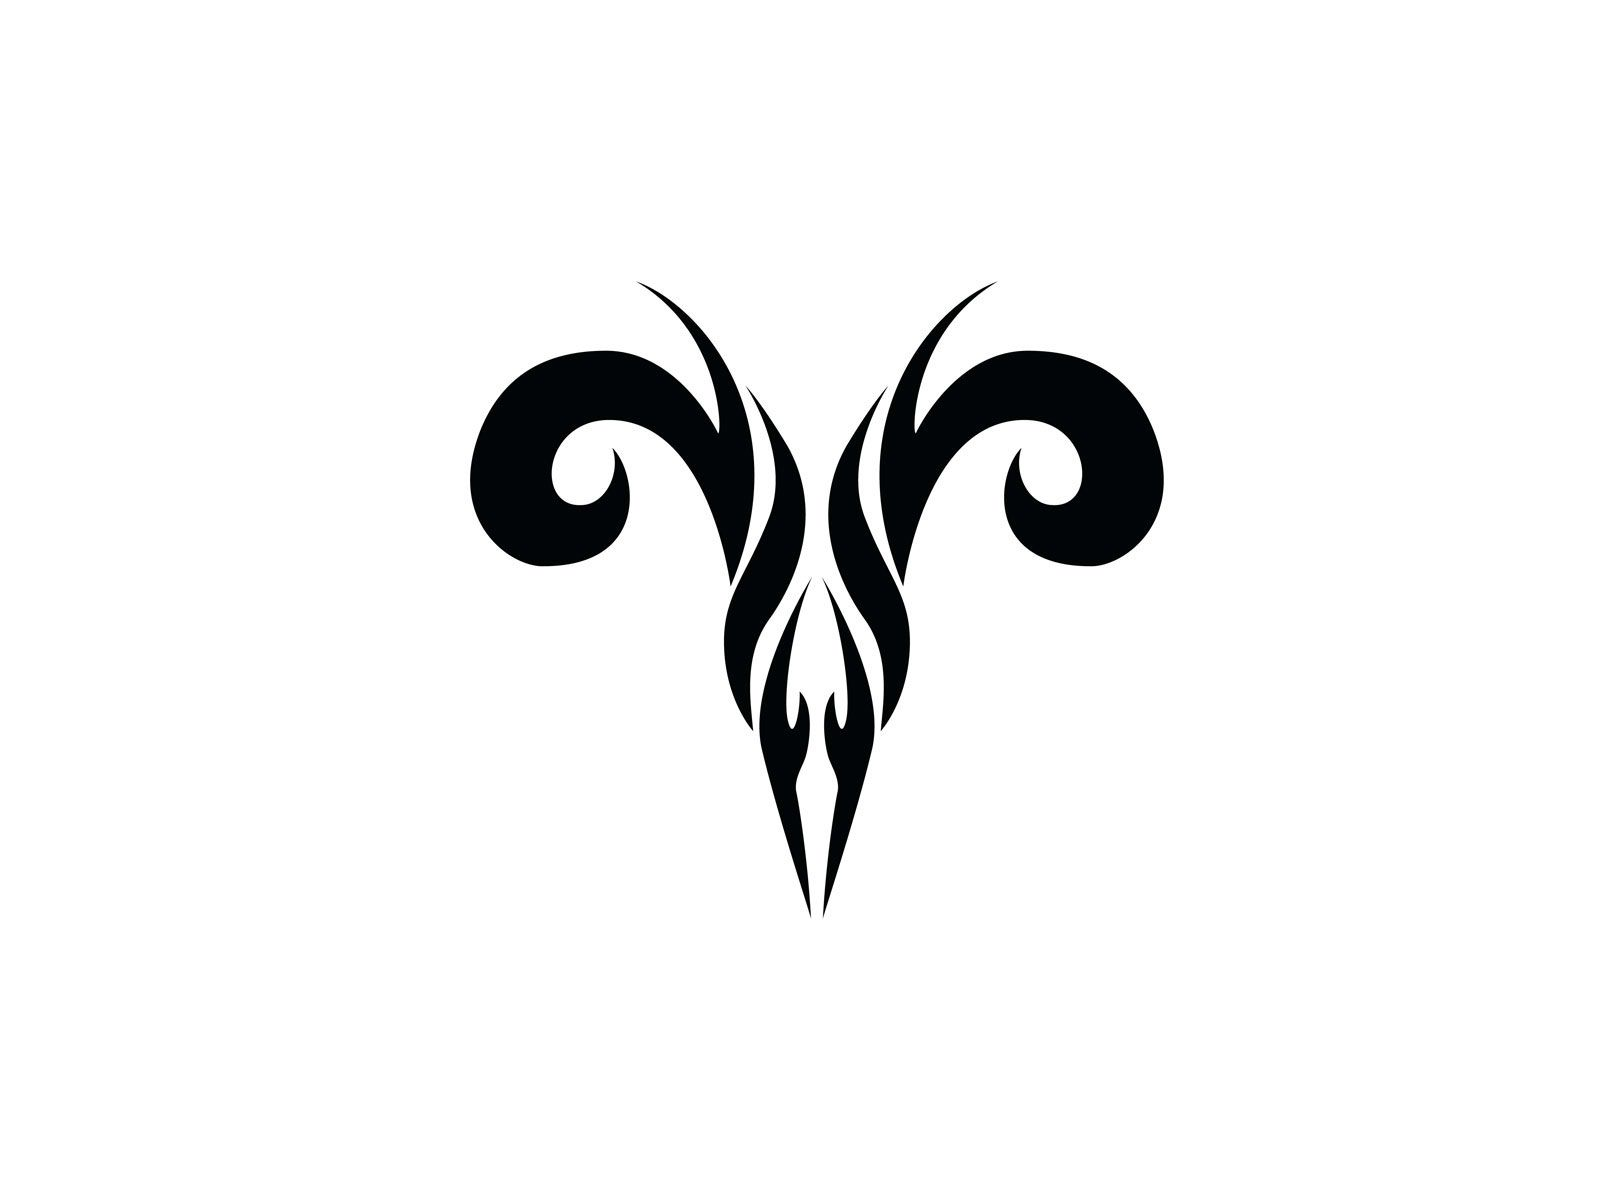 Signos Tatoo If You Like Tribal Zodiac Signs Tattoos You Might